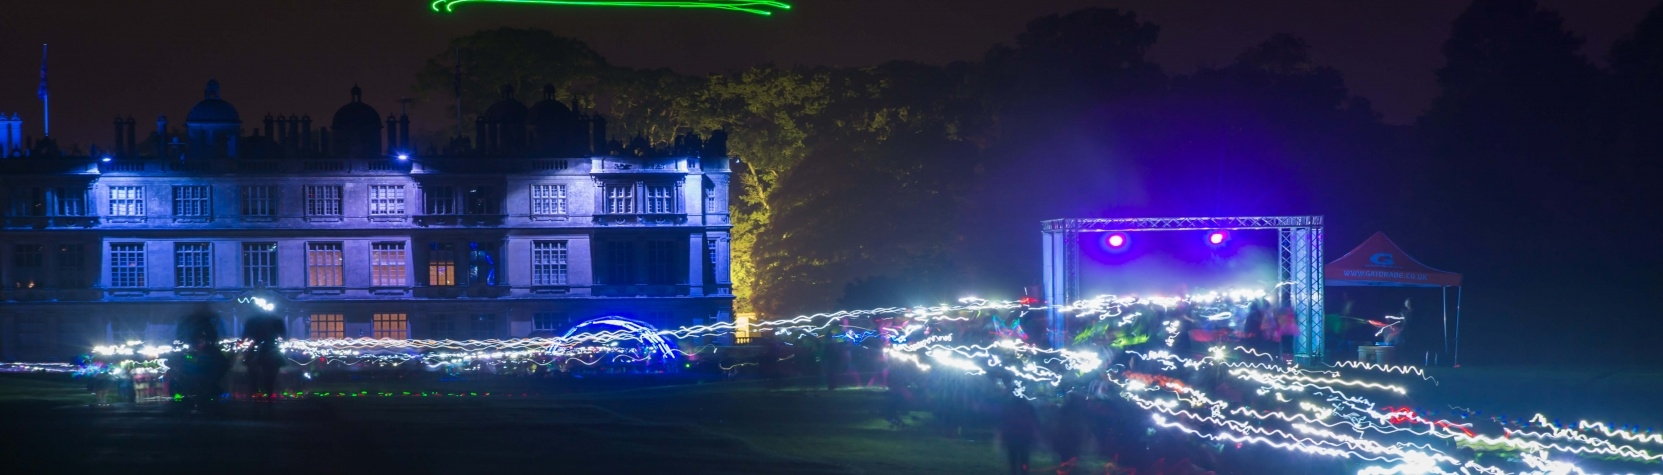 Glow in the Park: Longleat